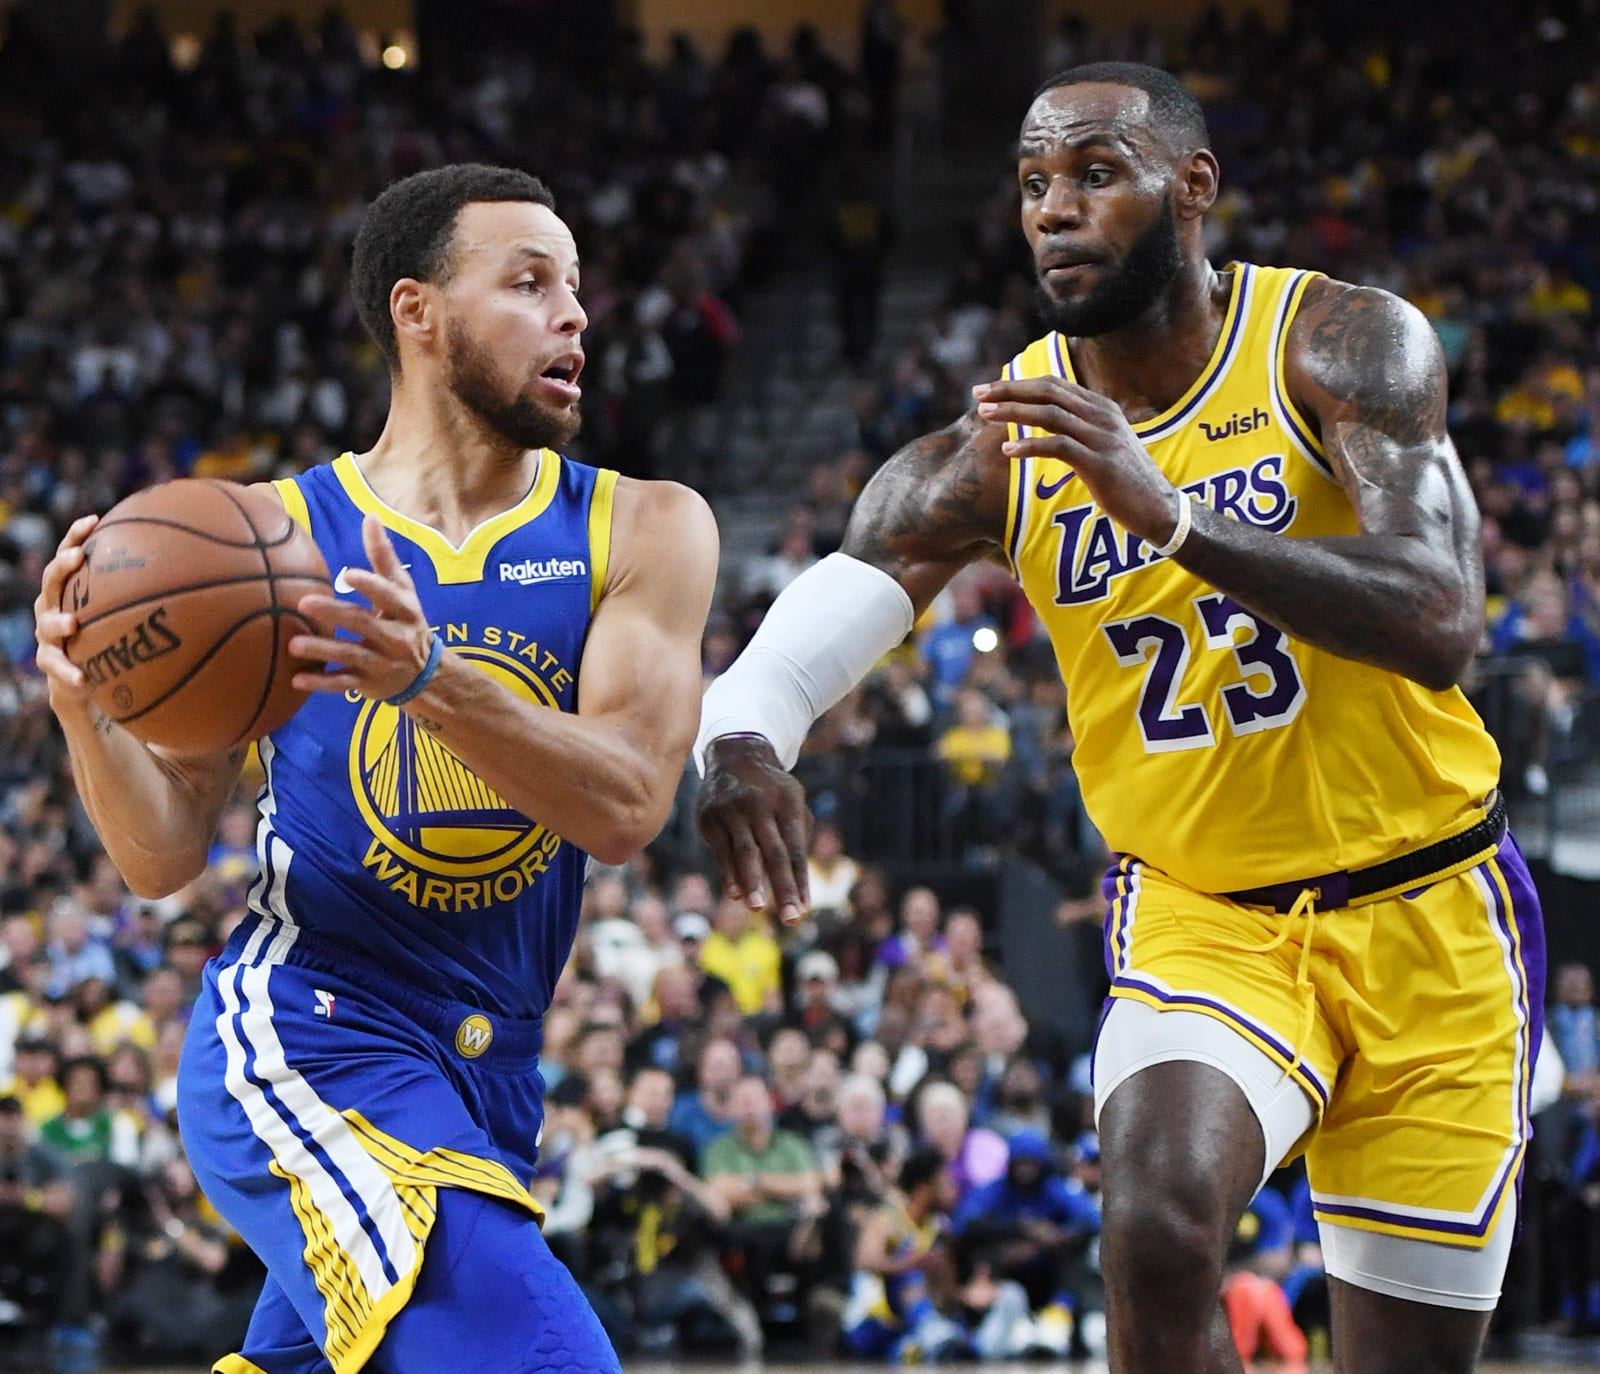 Stephen Curry vs LeBron James: An all-time great debate